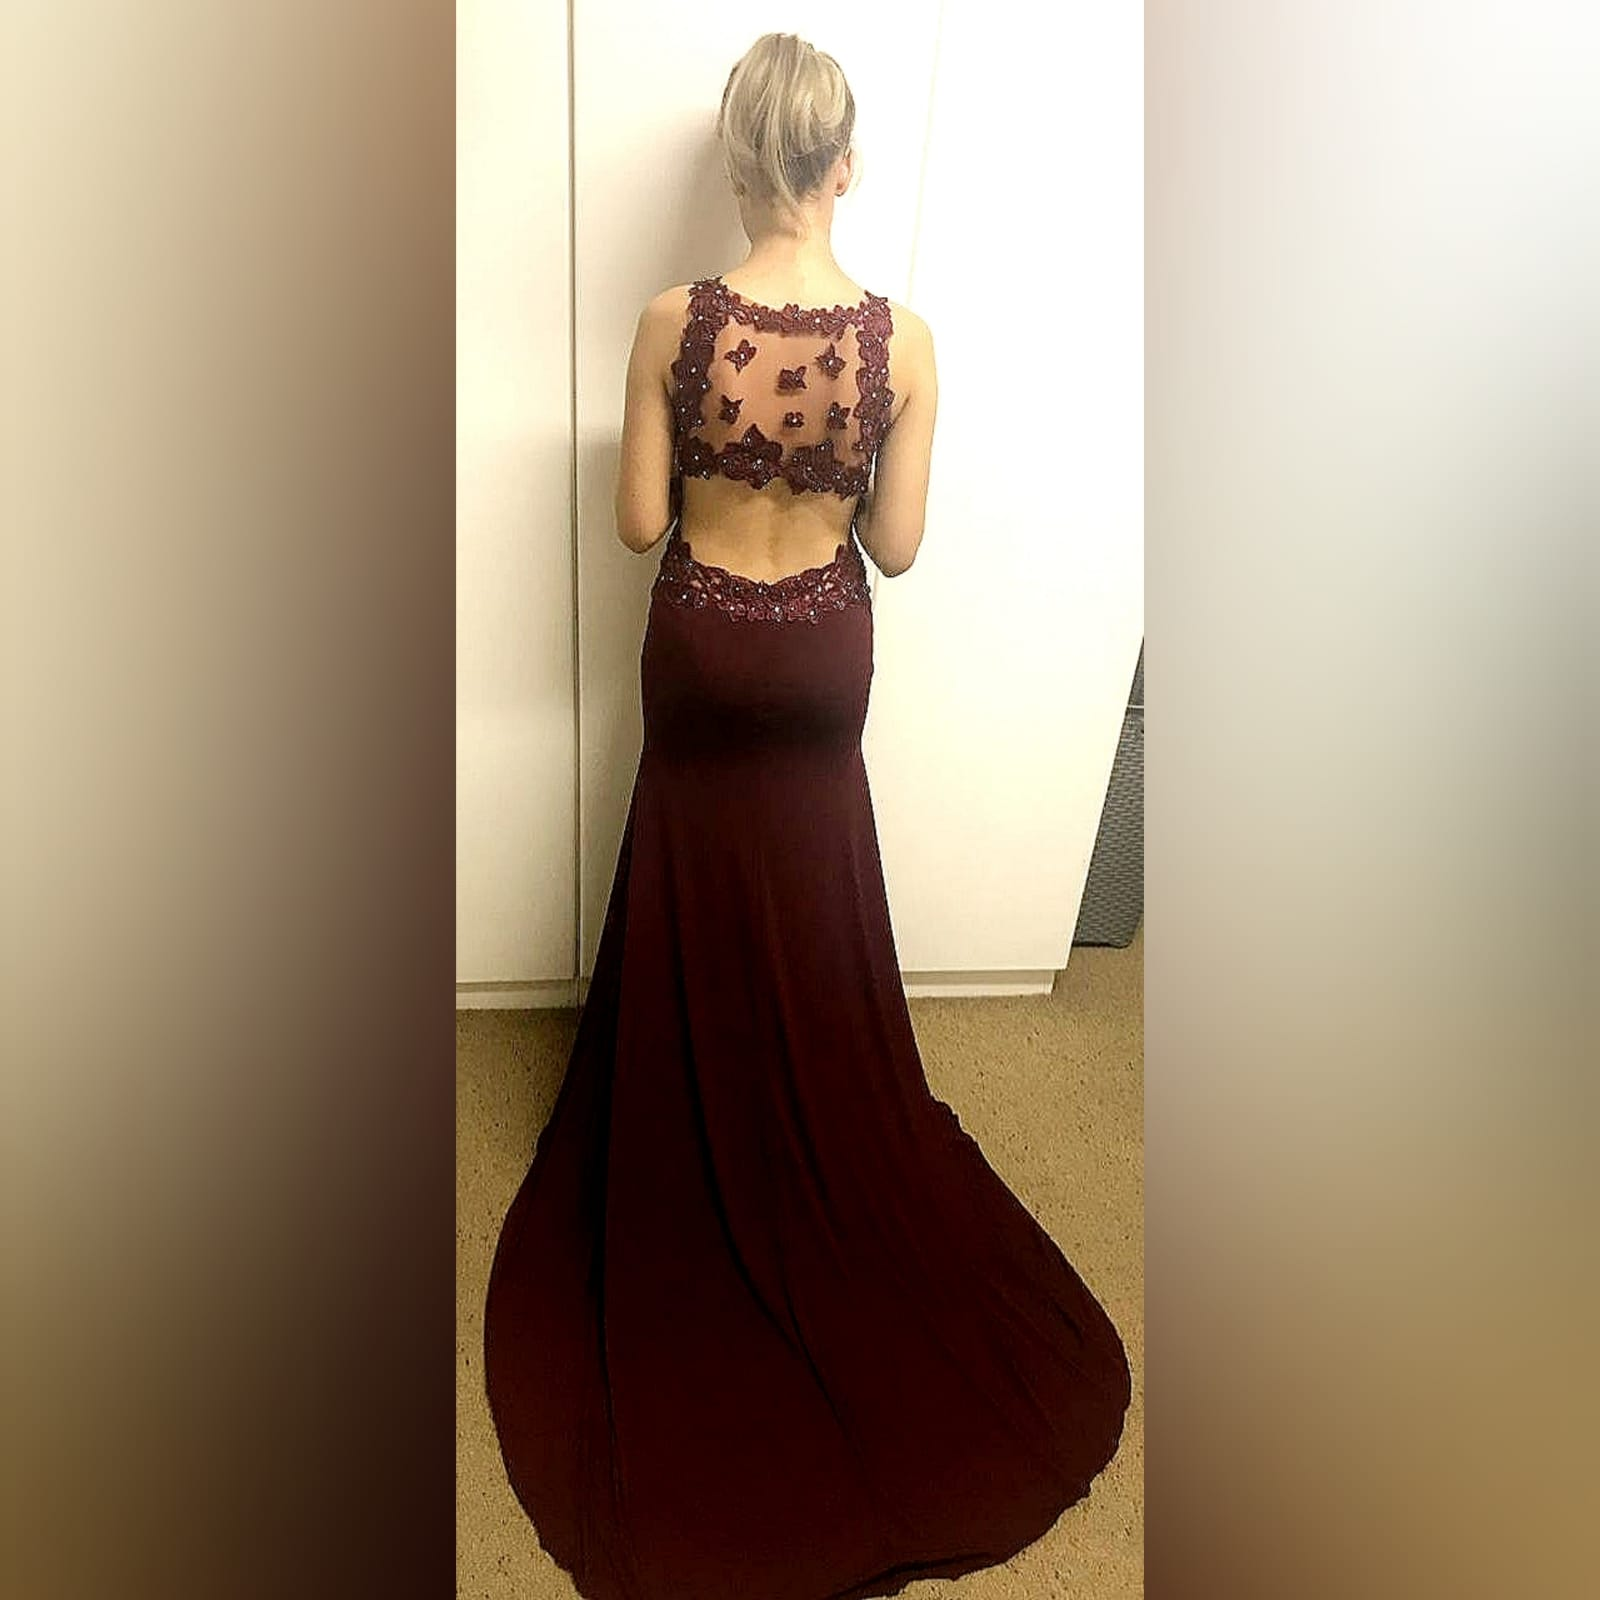 Burgundy long sexy matric farewell dress 11 burgundy long sexy matric farewell dress with an illusion lace low back and side tummy. Sweetheart neckline detailed with lace. With a slit and a train.